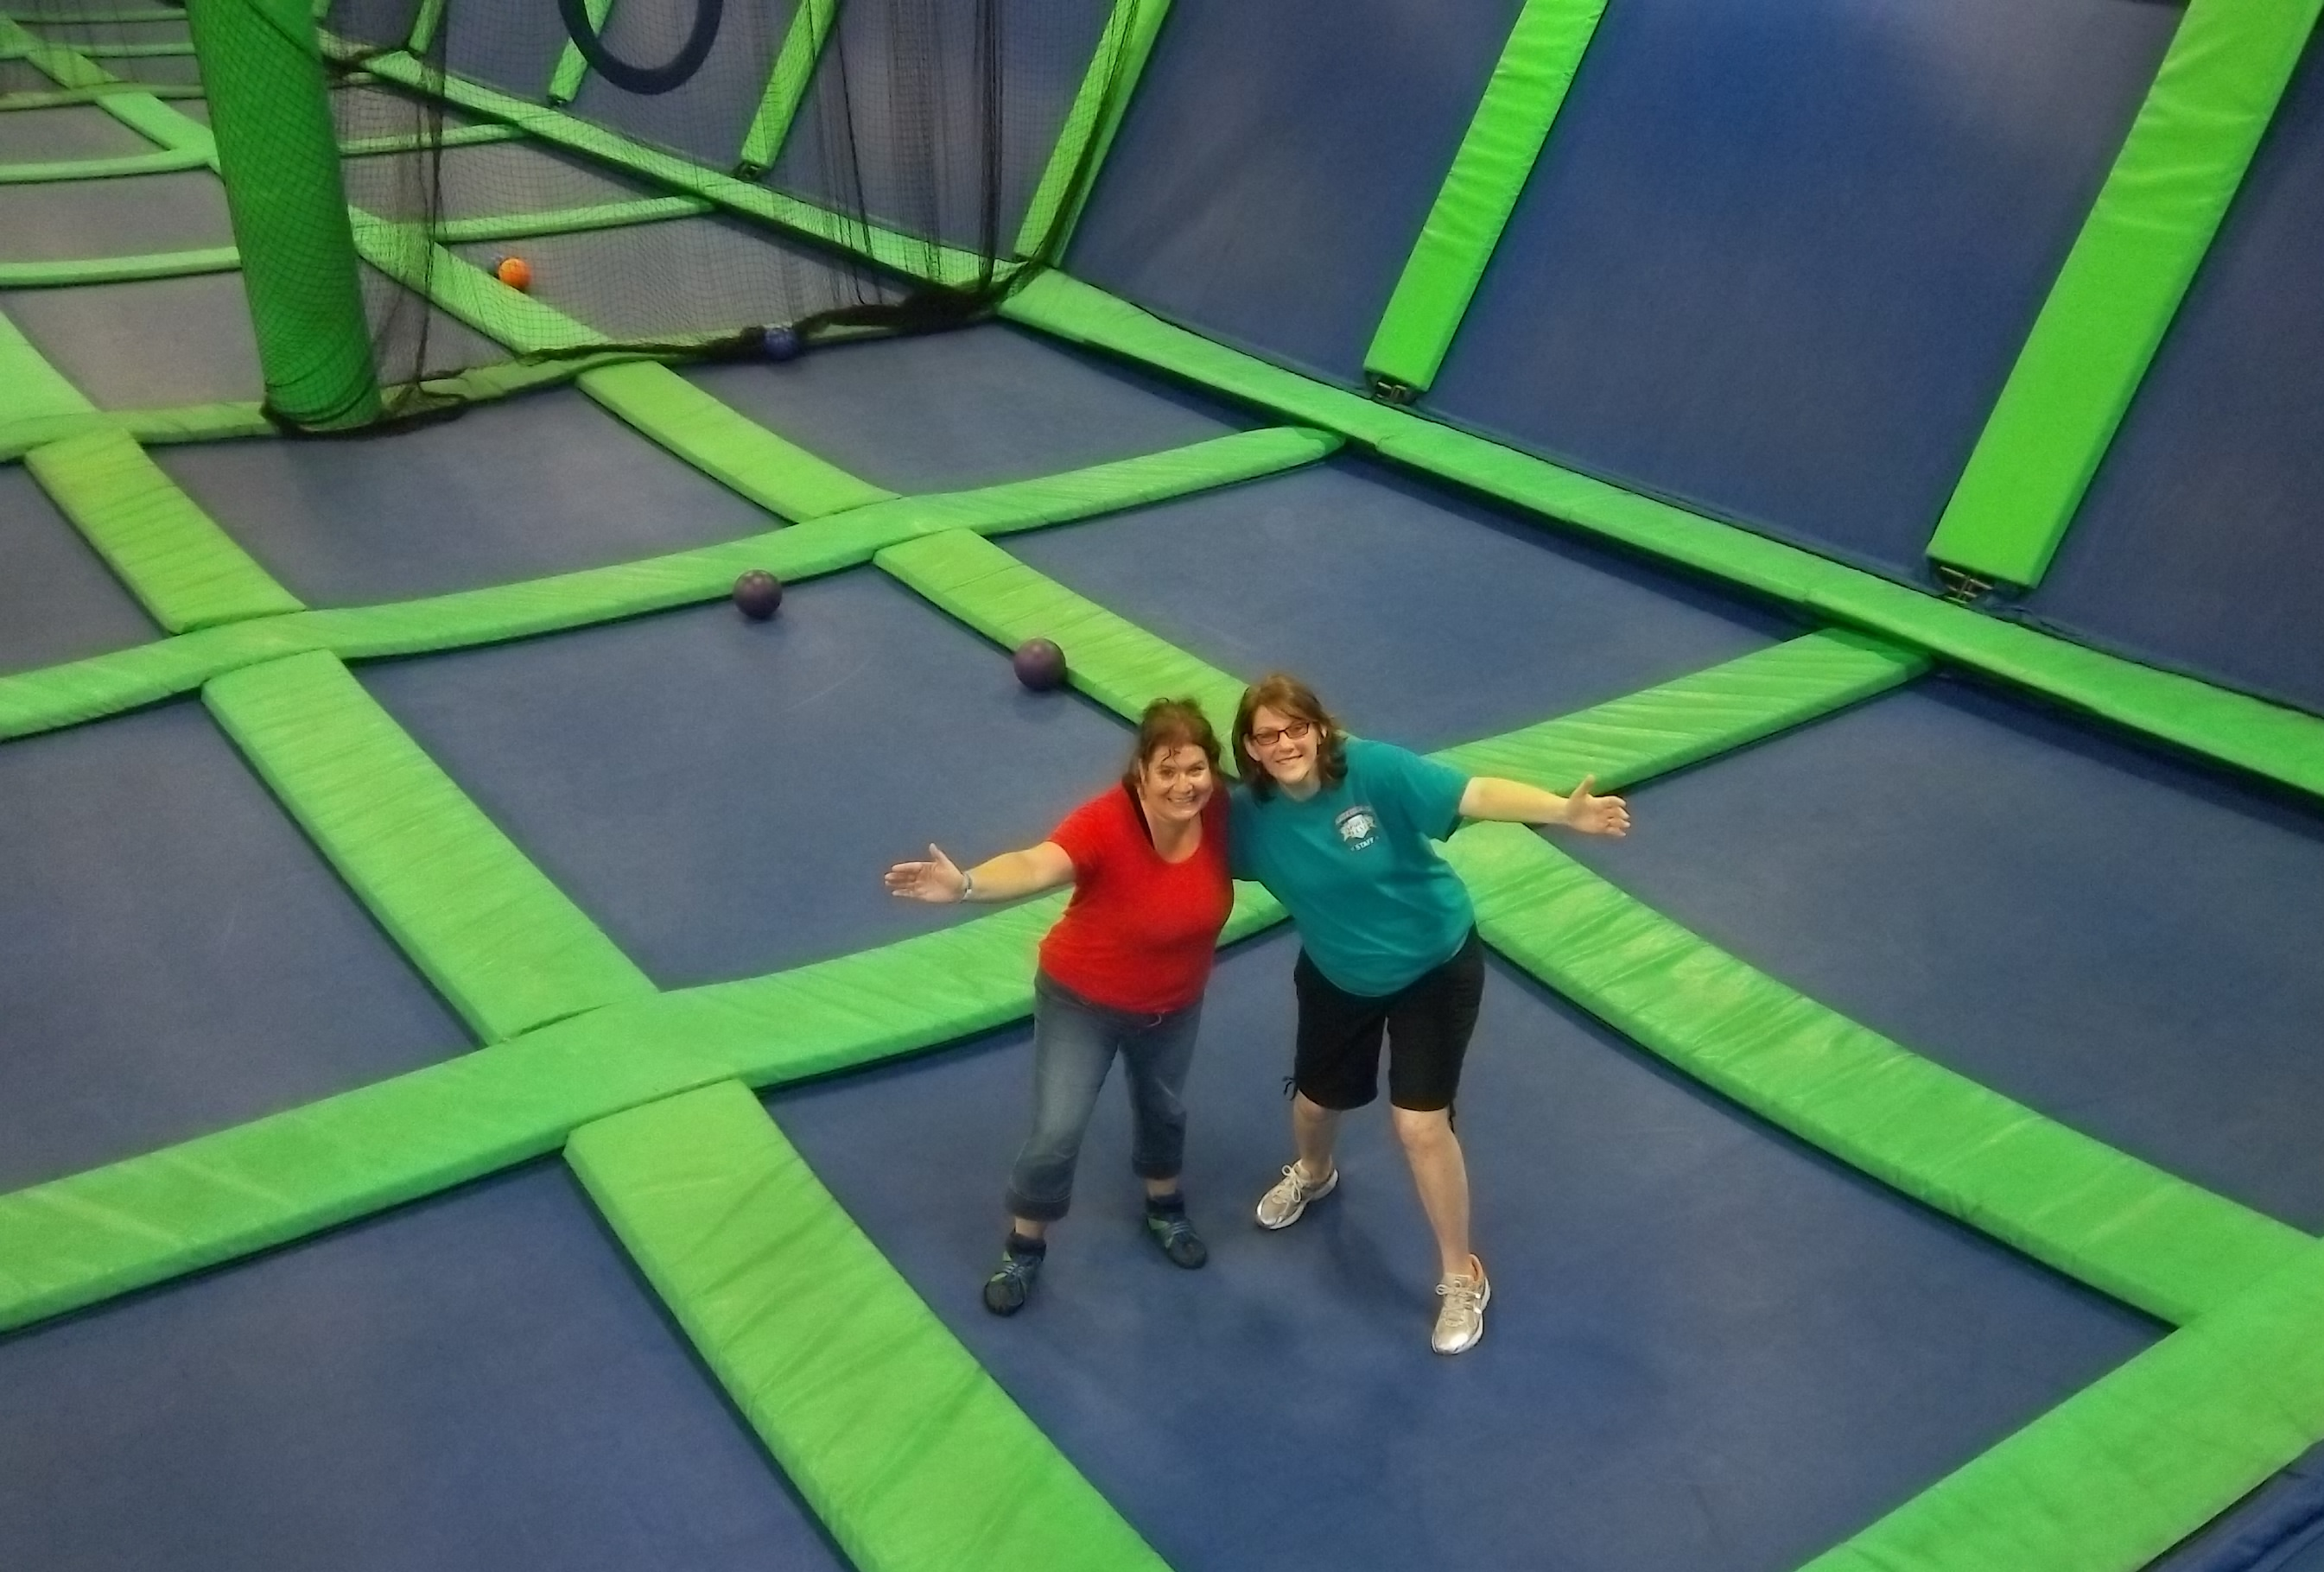 Giveaway for Central Florida: Pair of Monthly Jump Passes to AirHeads Trampoline Arena in Orlando